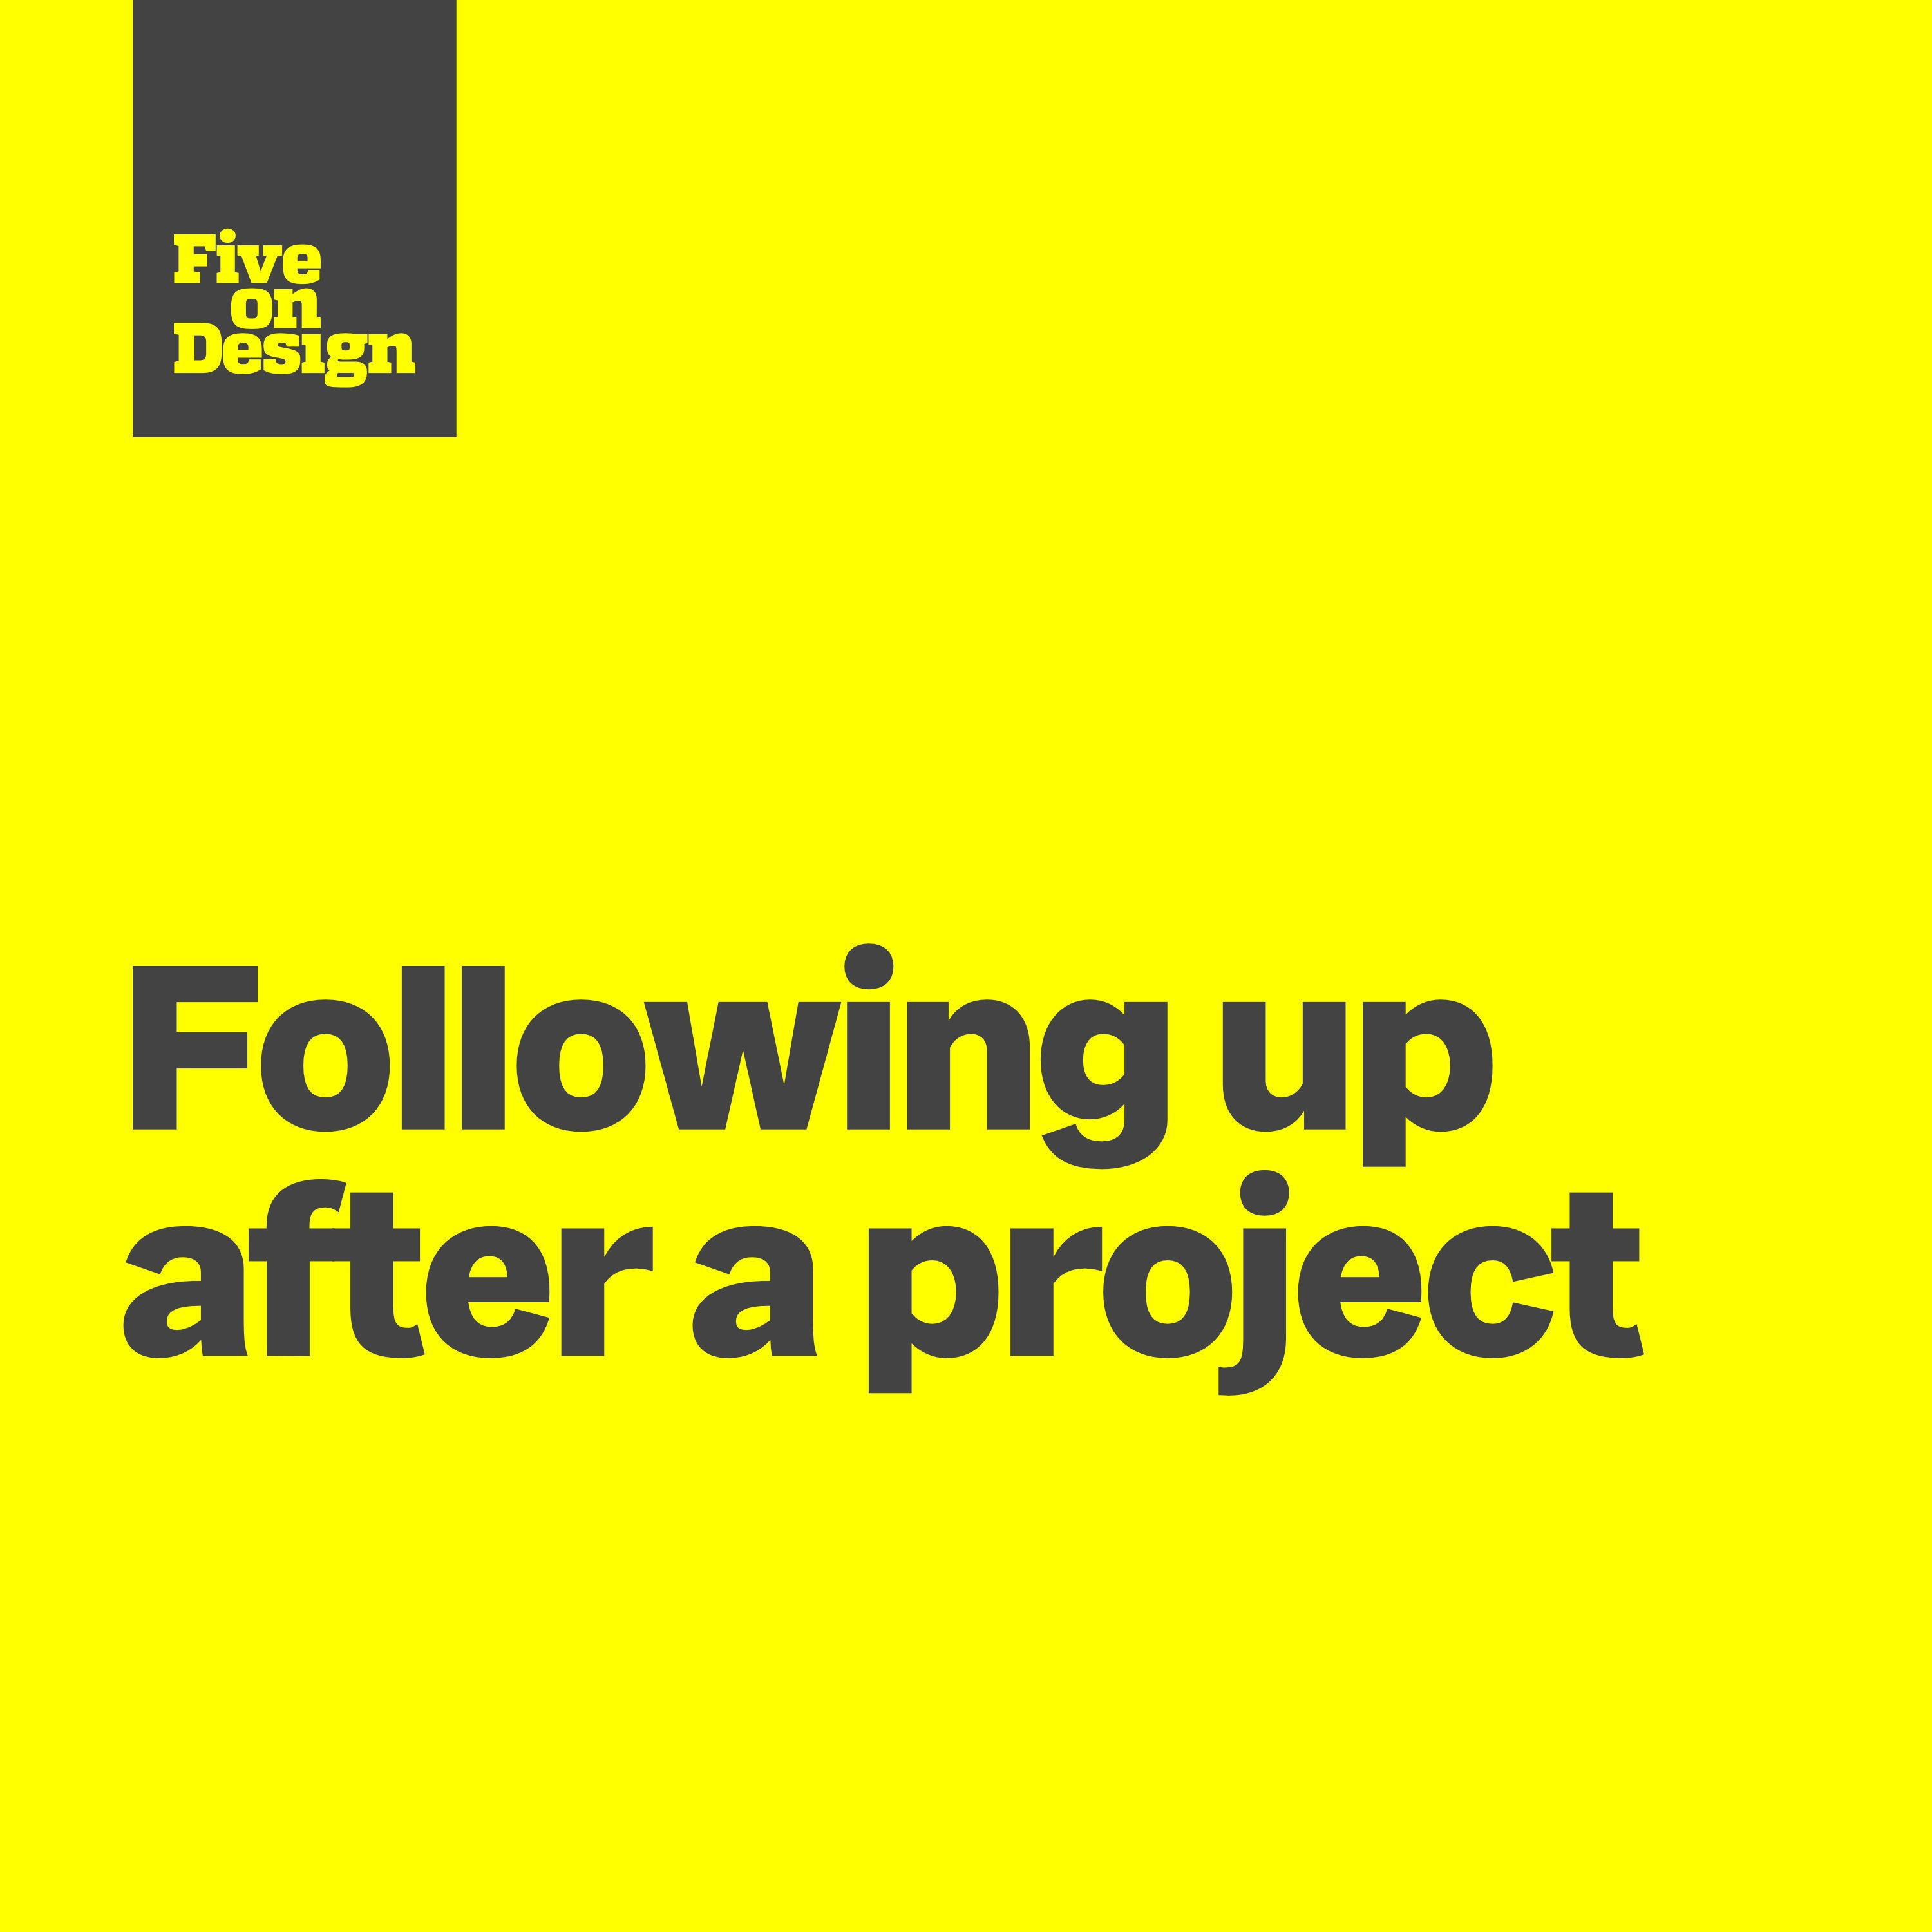 Following up after a project